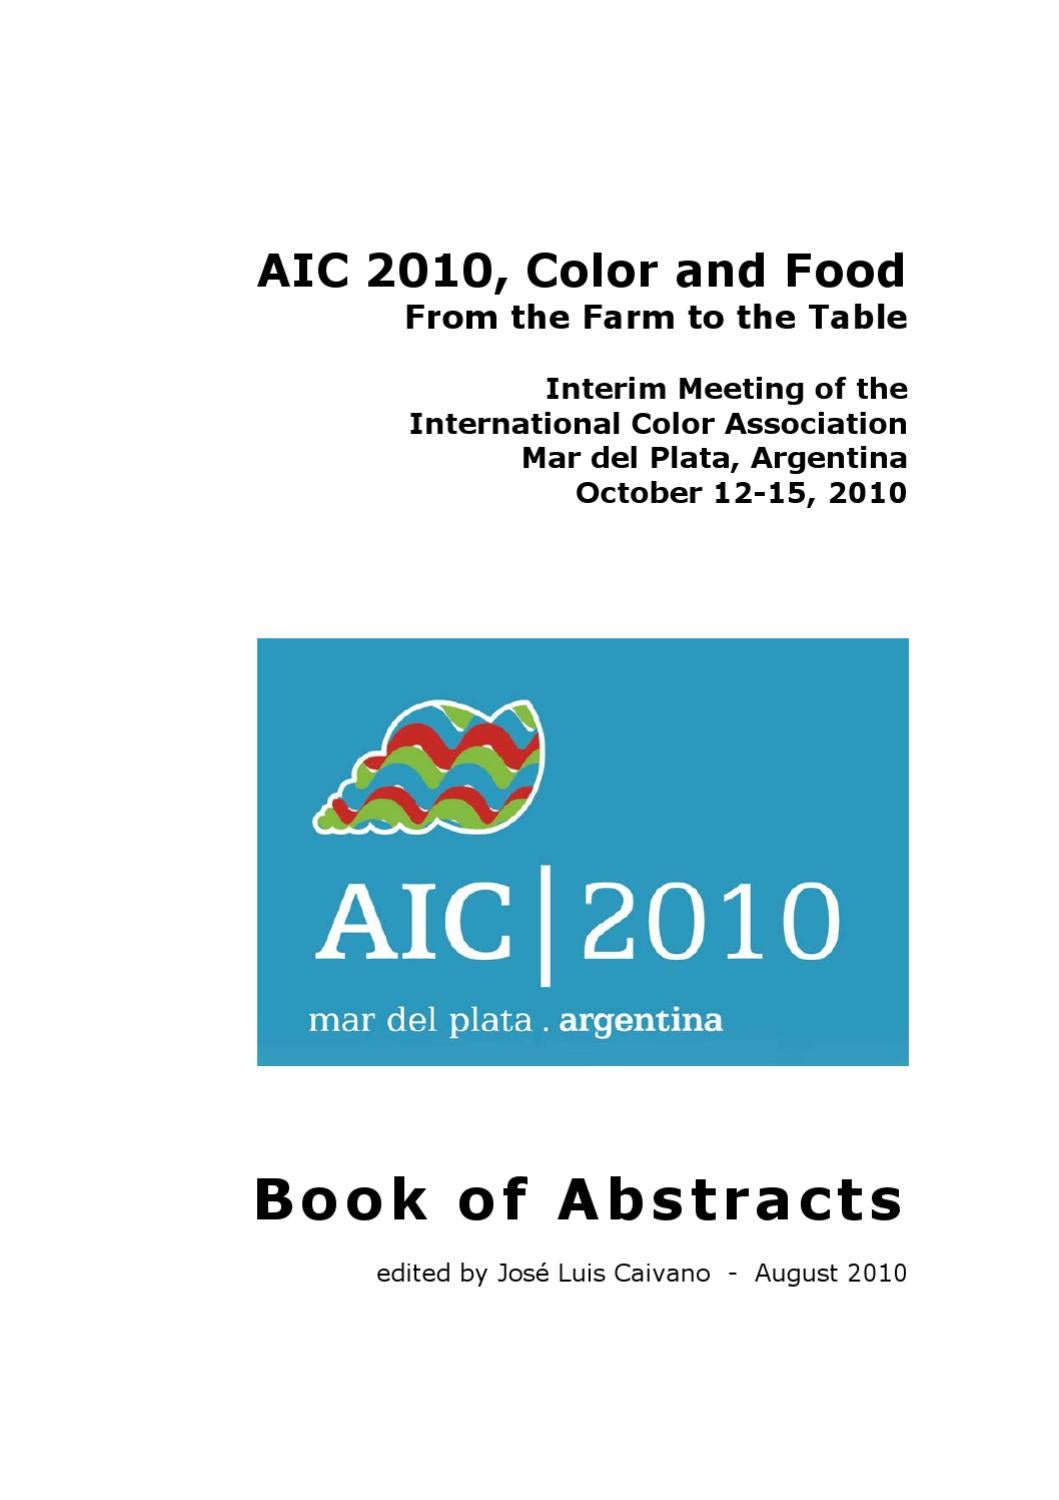 Arte Et Marte Cs Go Aic 2010 Color And Food Book Of Abstracts By Jose Caivano Issuu